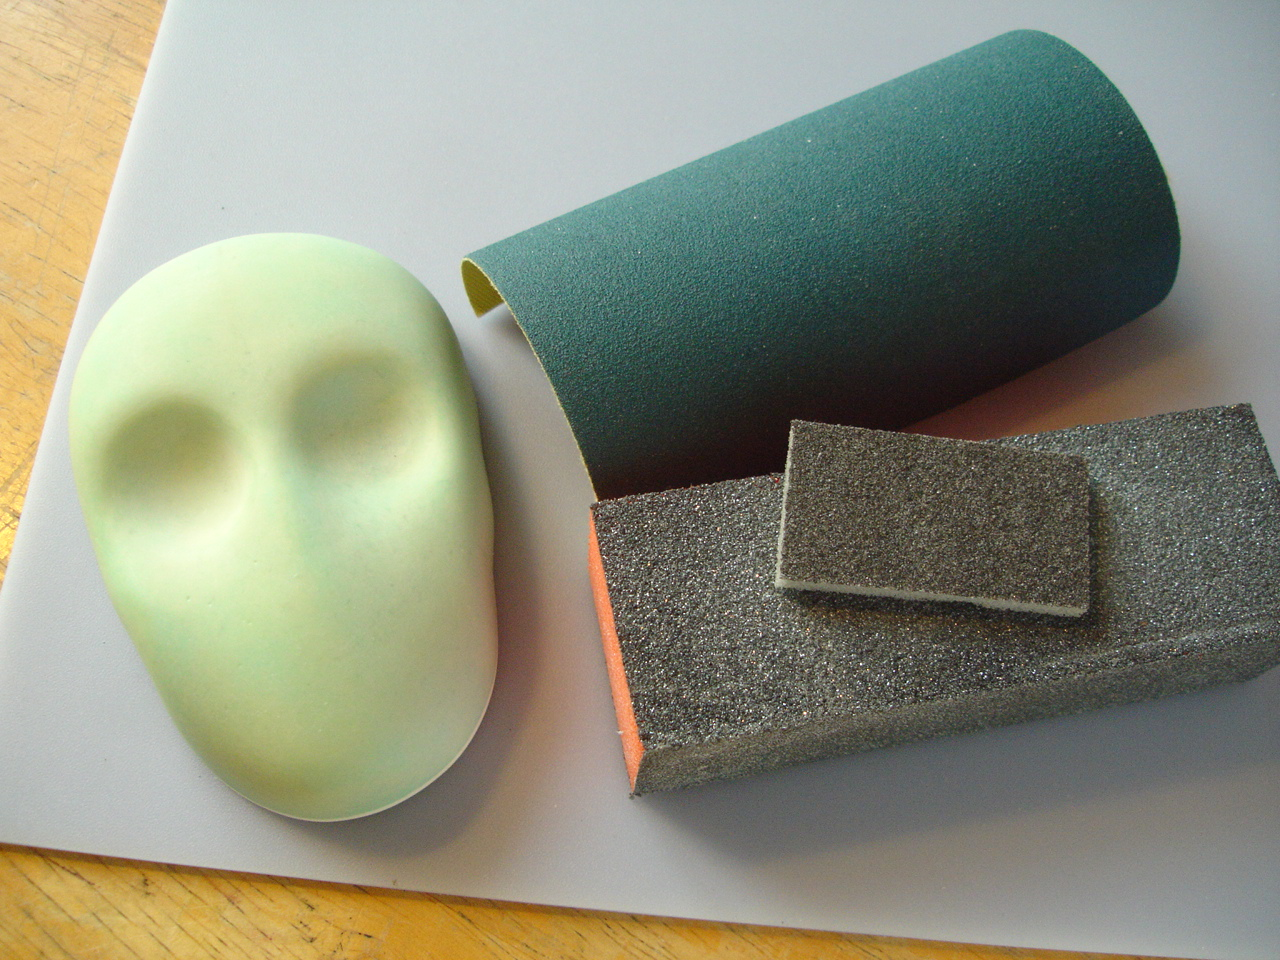 Foam-backed and cloth-backed sanding materials